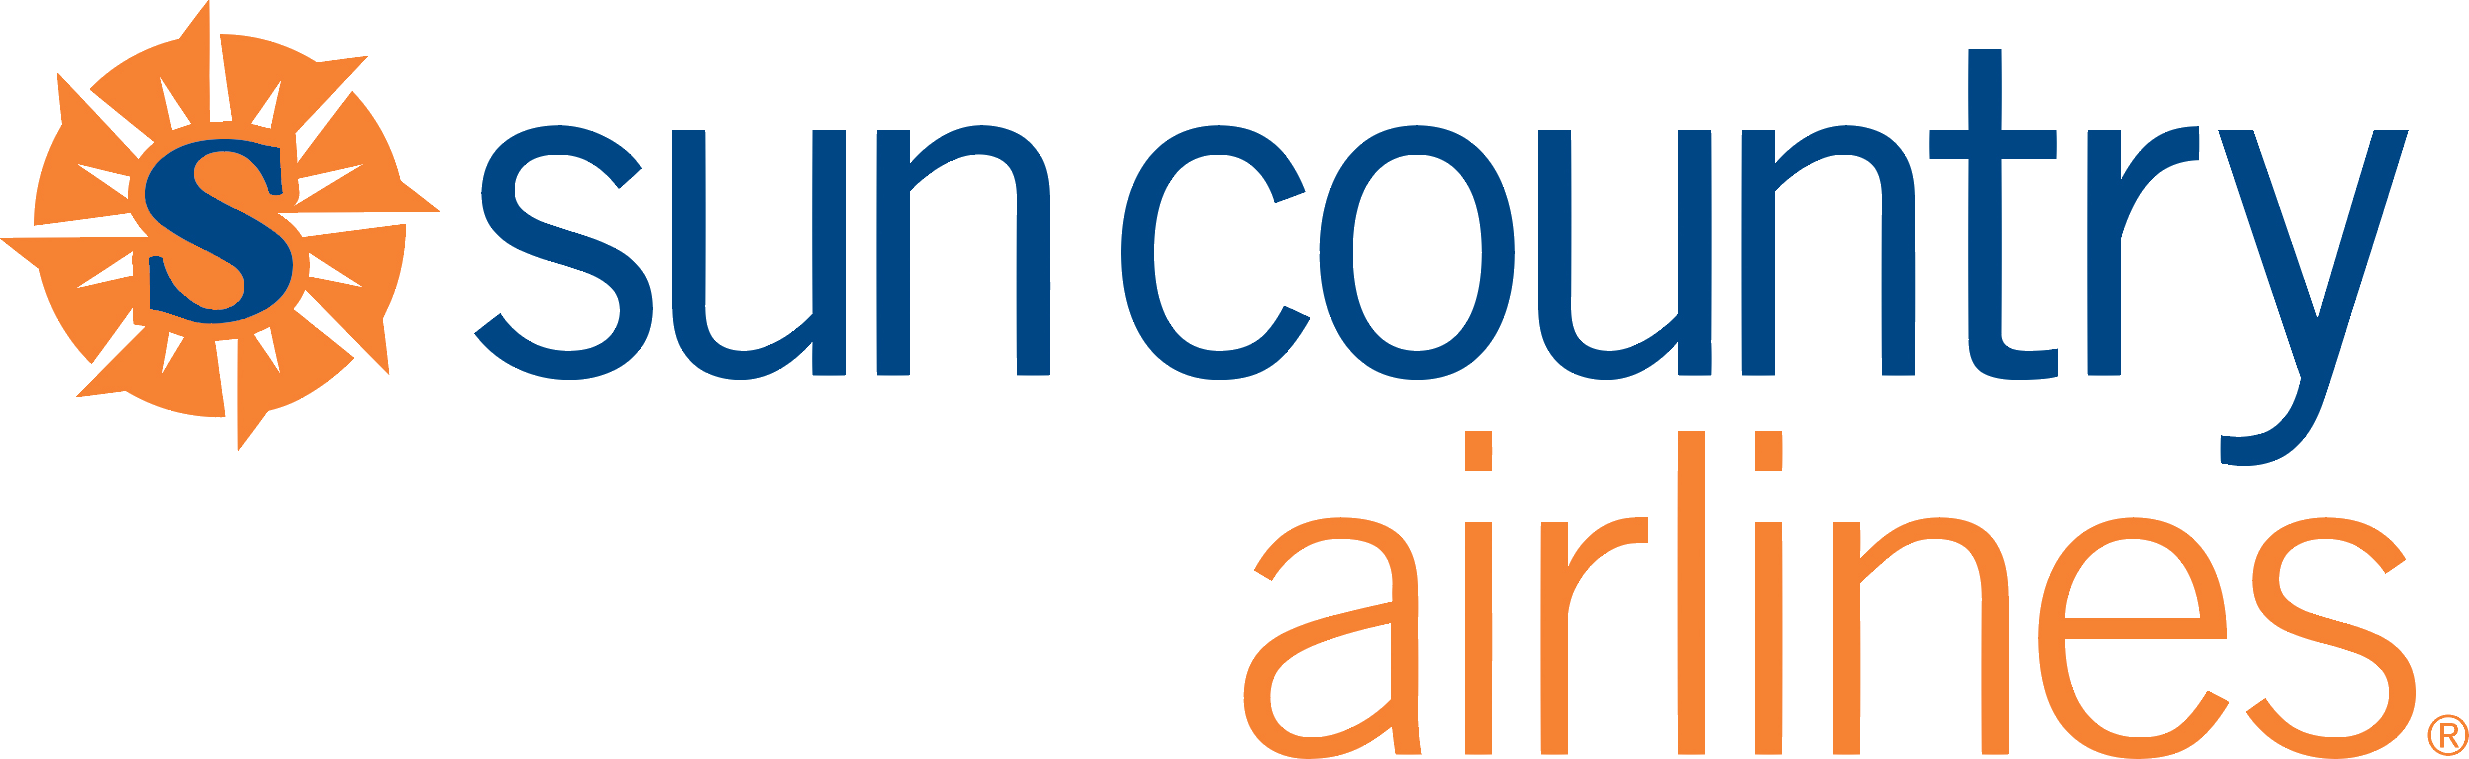 Sun country airlines logo png. Airline finder